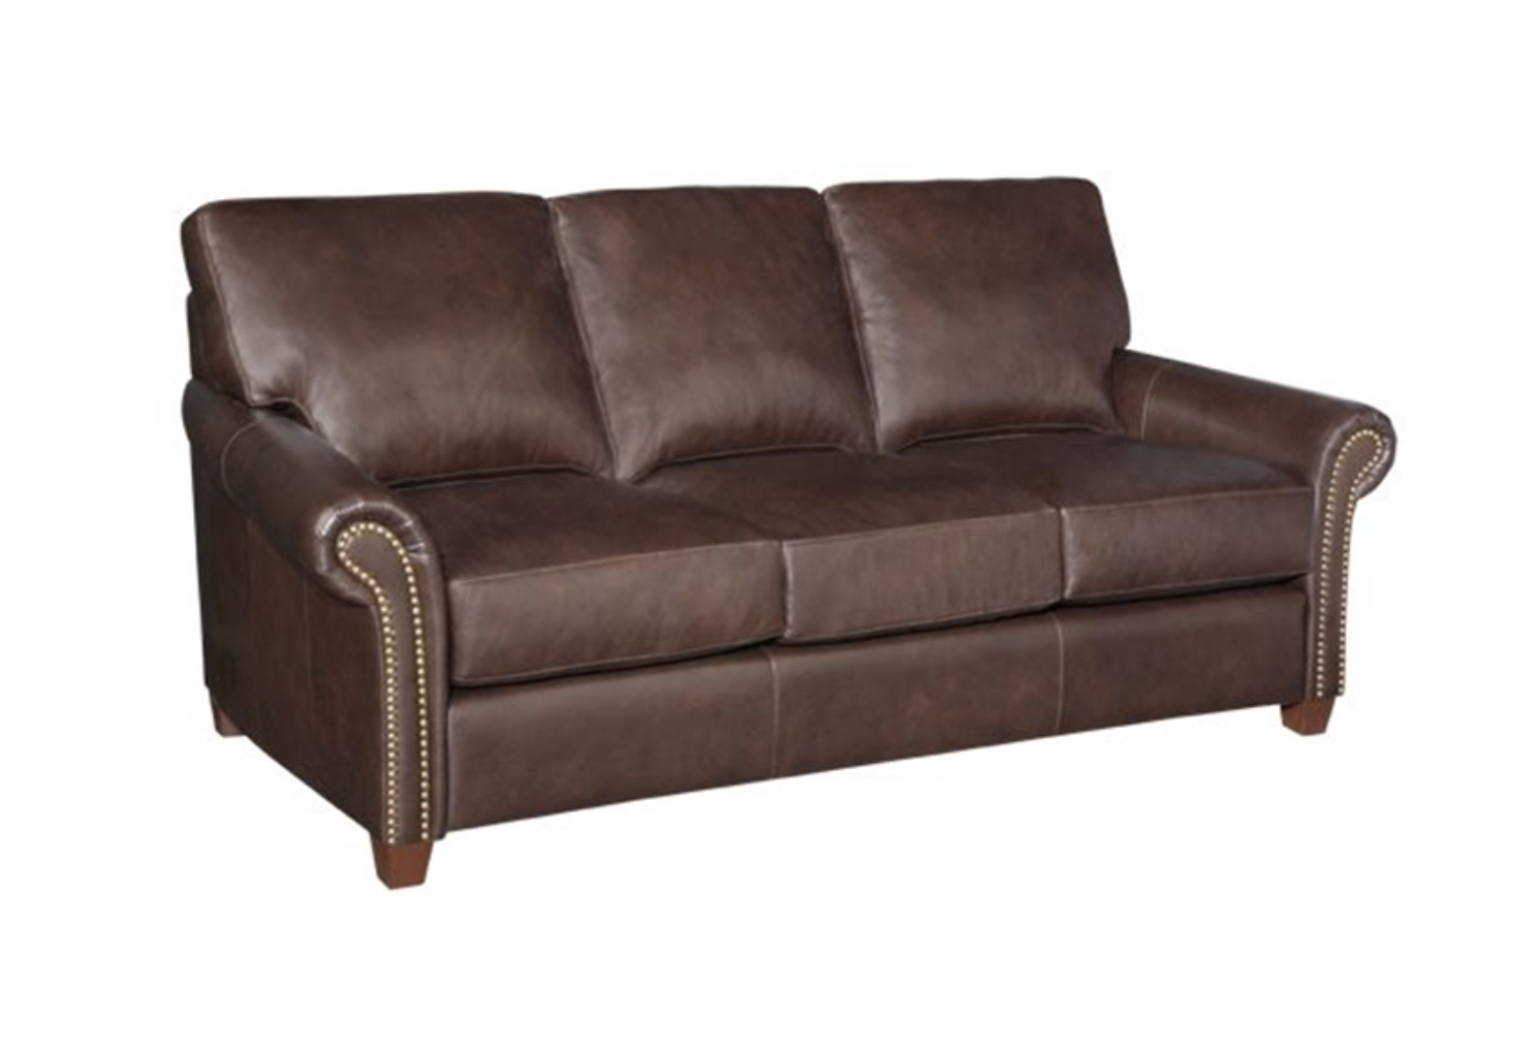 Legacy Leather Is Undoubtedly The Best Quality Furniture Manufactured In Canada And Not